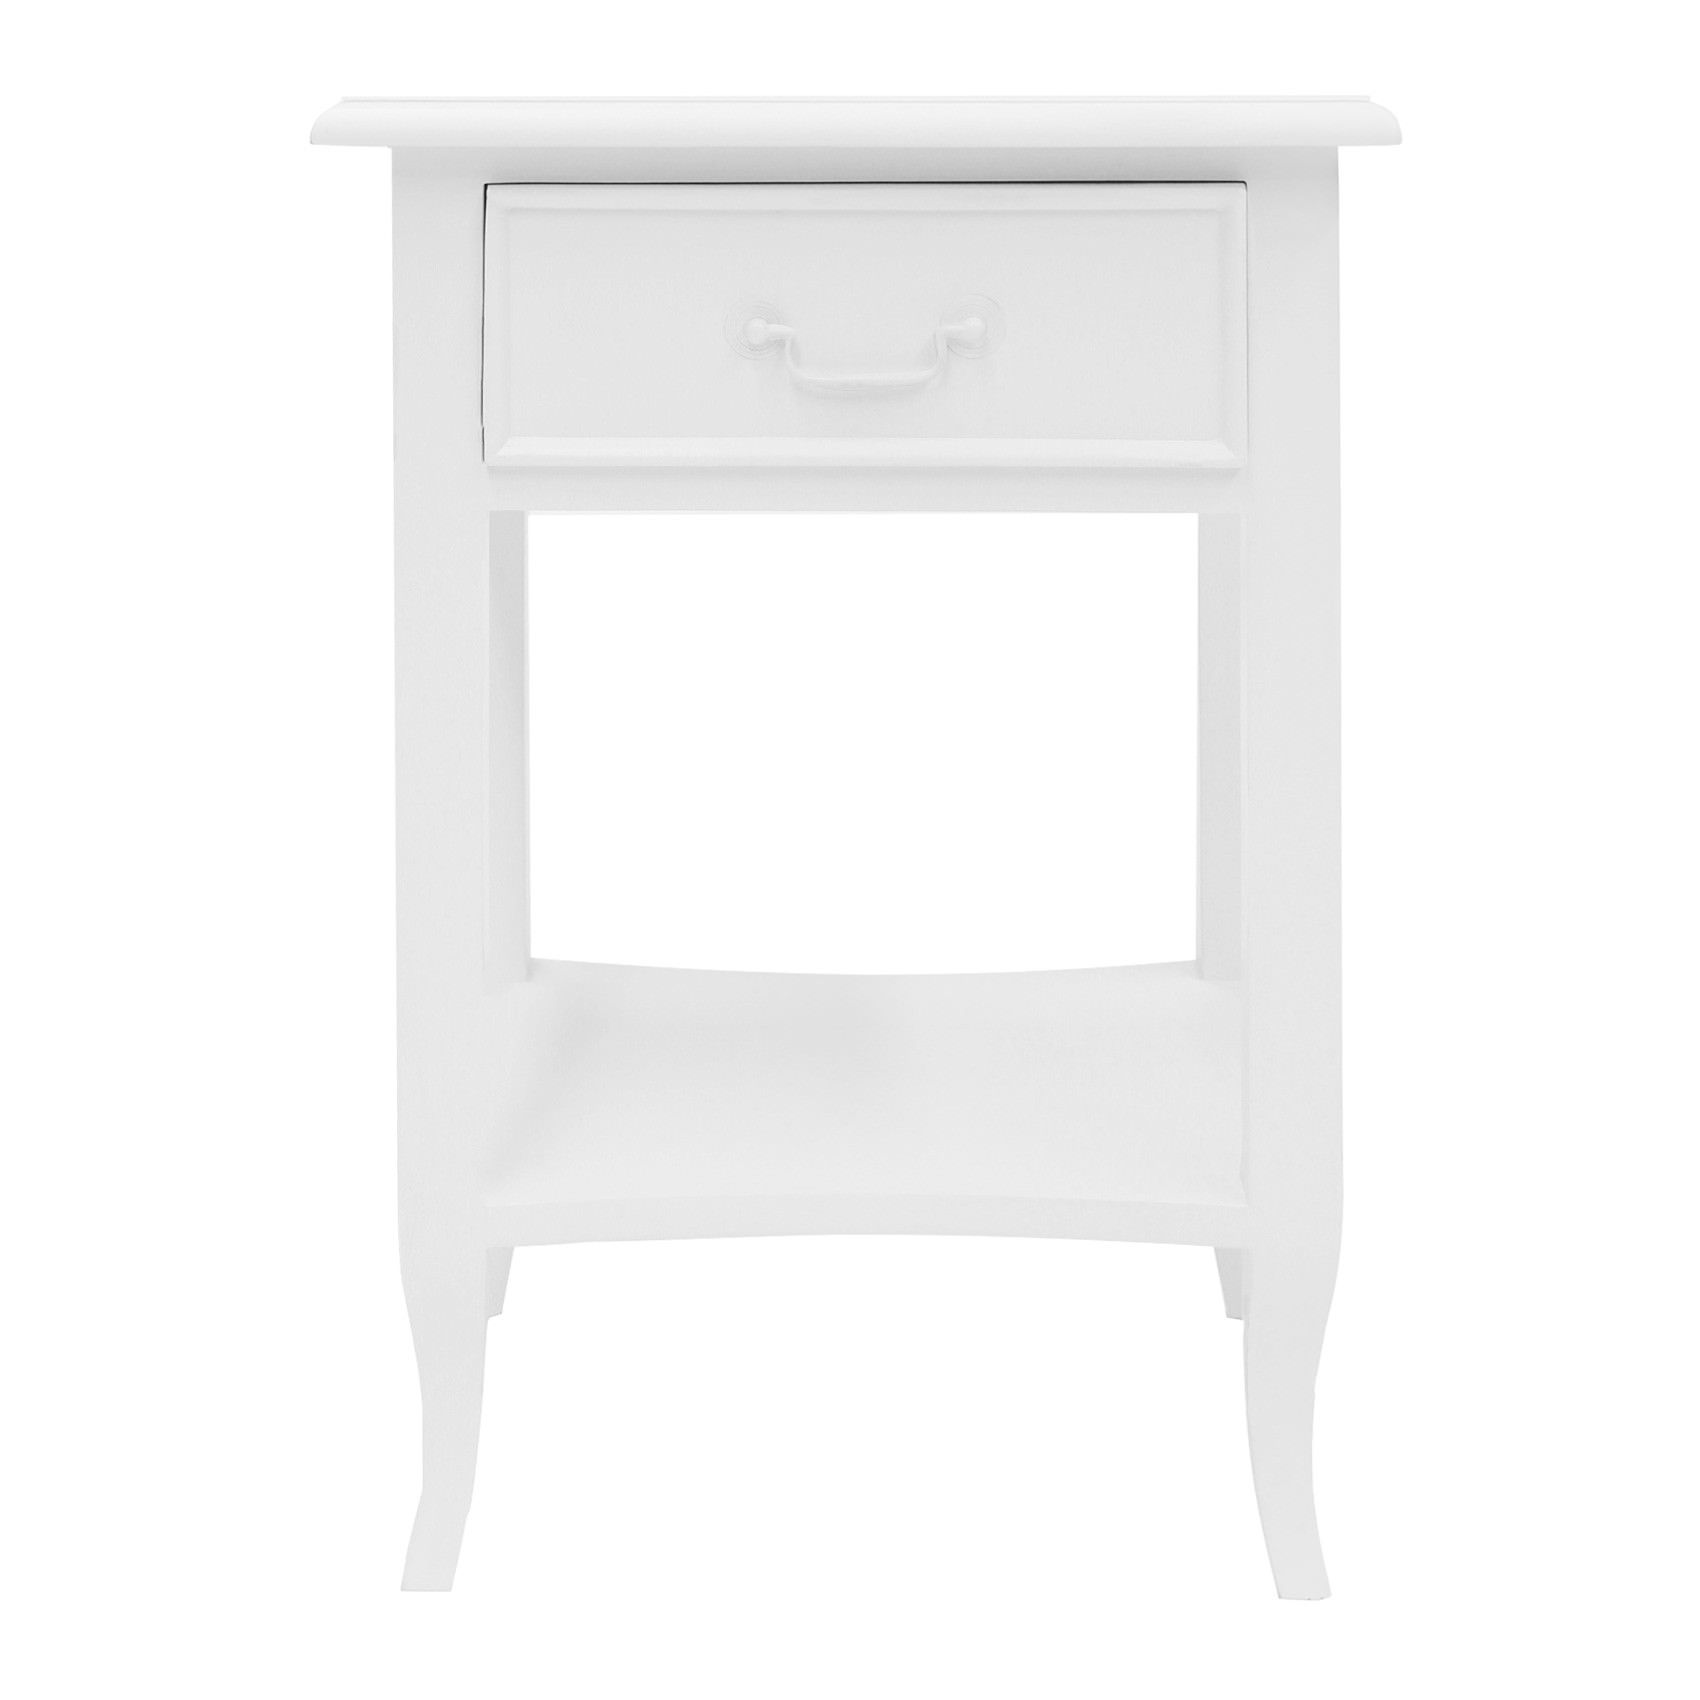 Ygrande Hand Crafted Mahogany Bedside Table, White